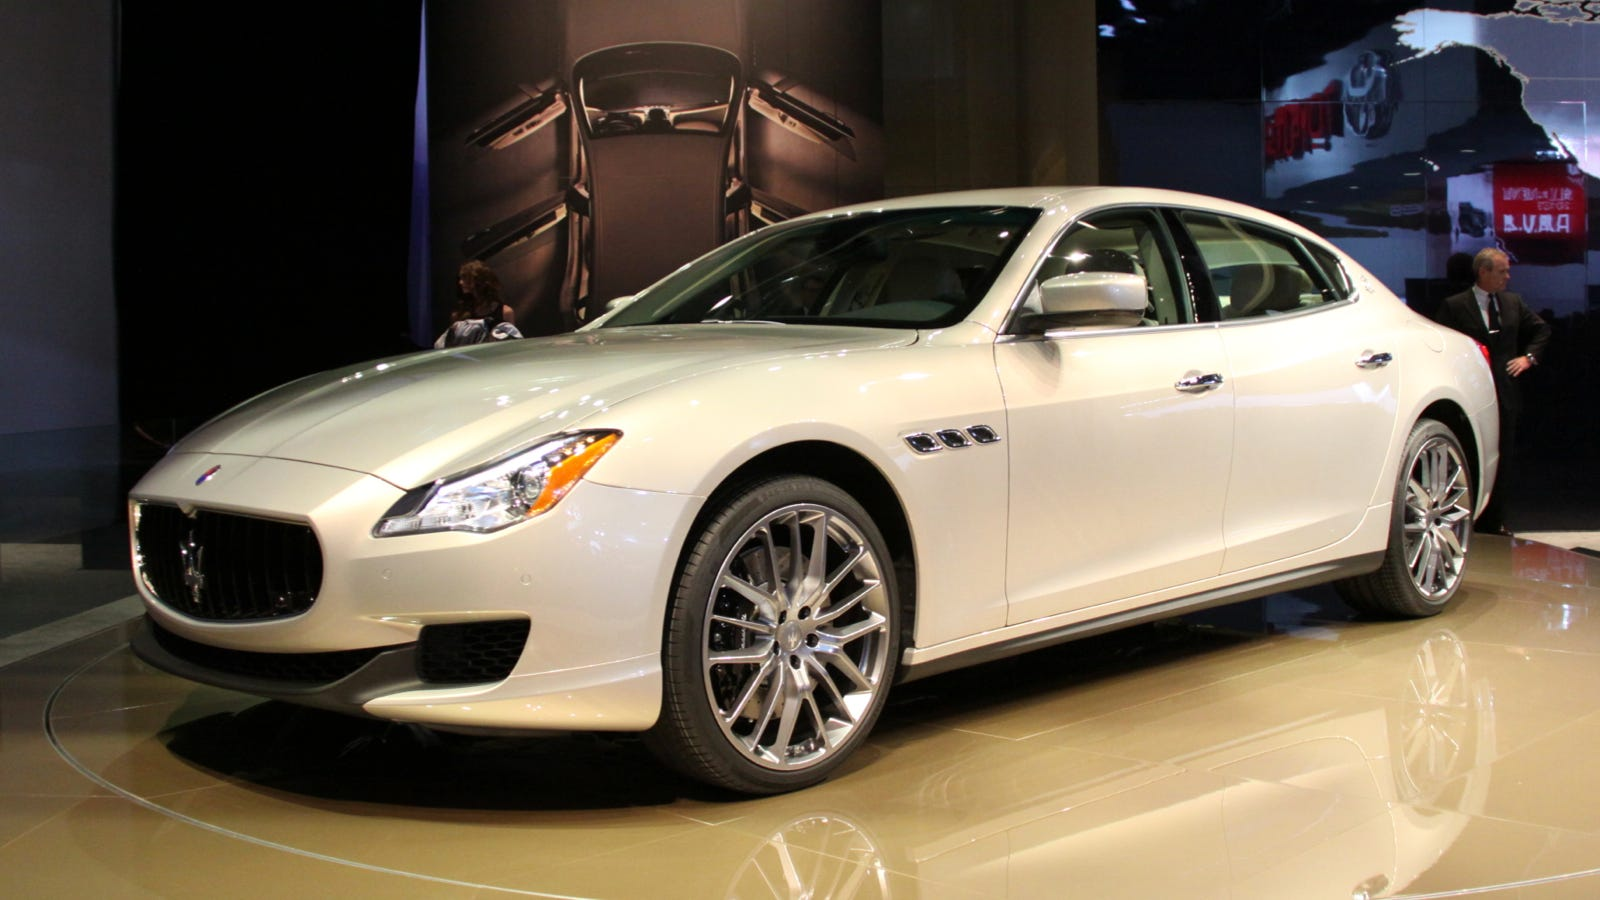 2013 maserati quattroporte quattro means four and porte means doors. Black Bedroom Furniture Sets. Home Design Ideas